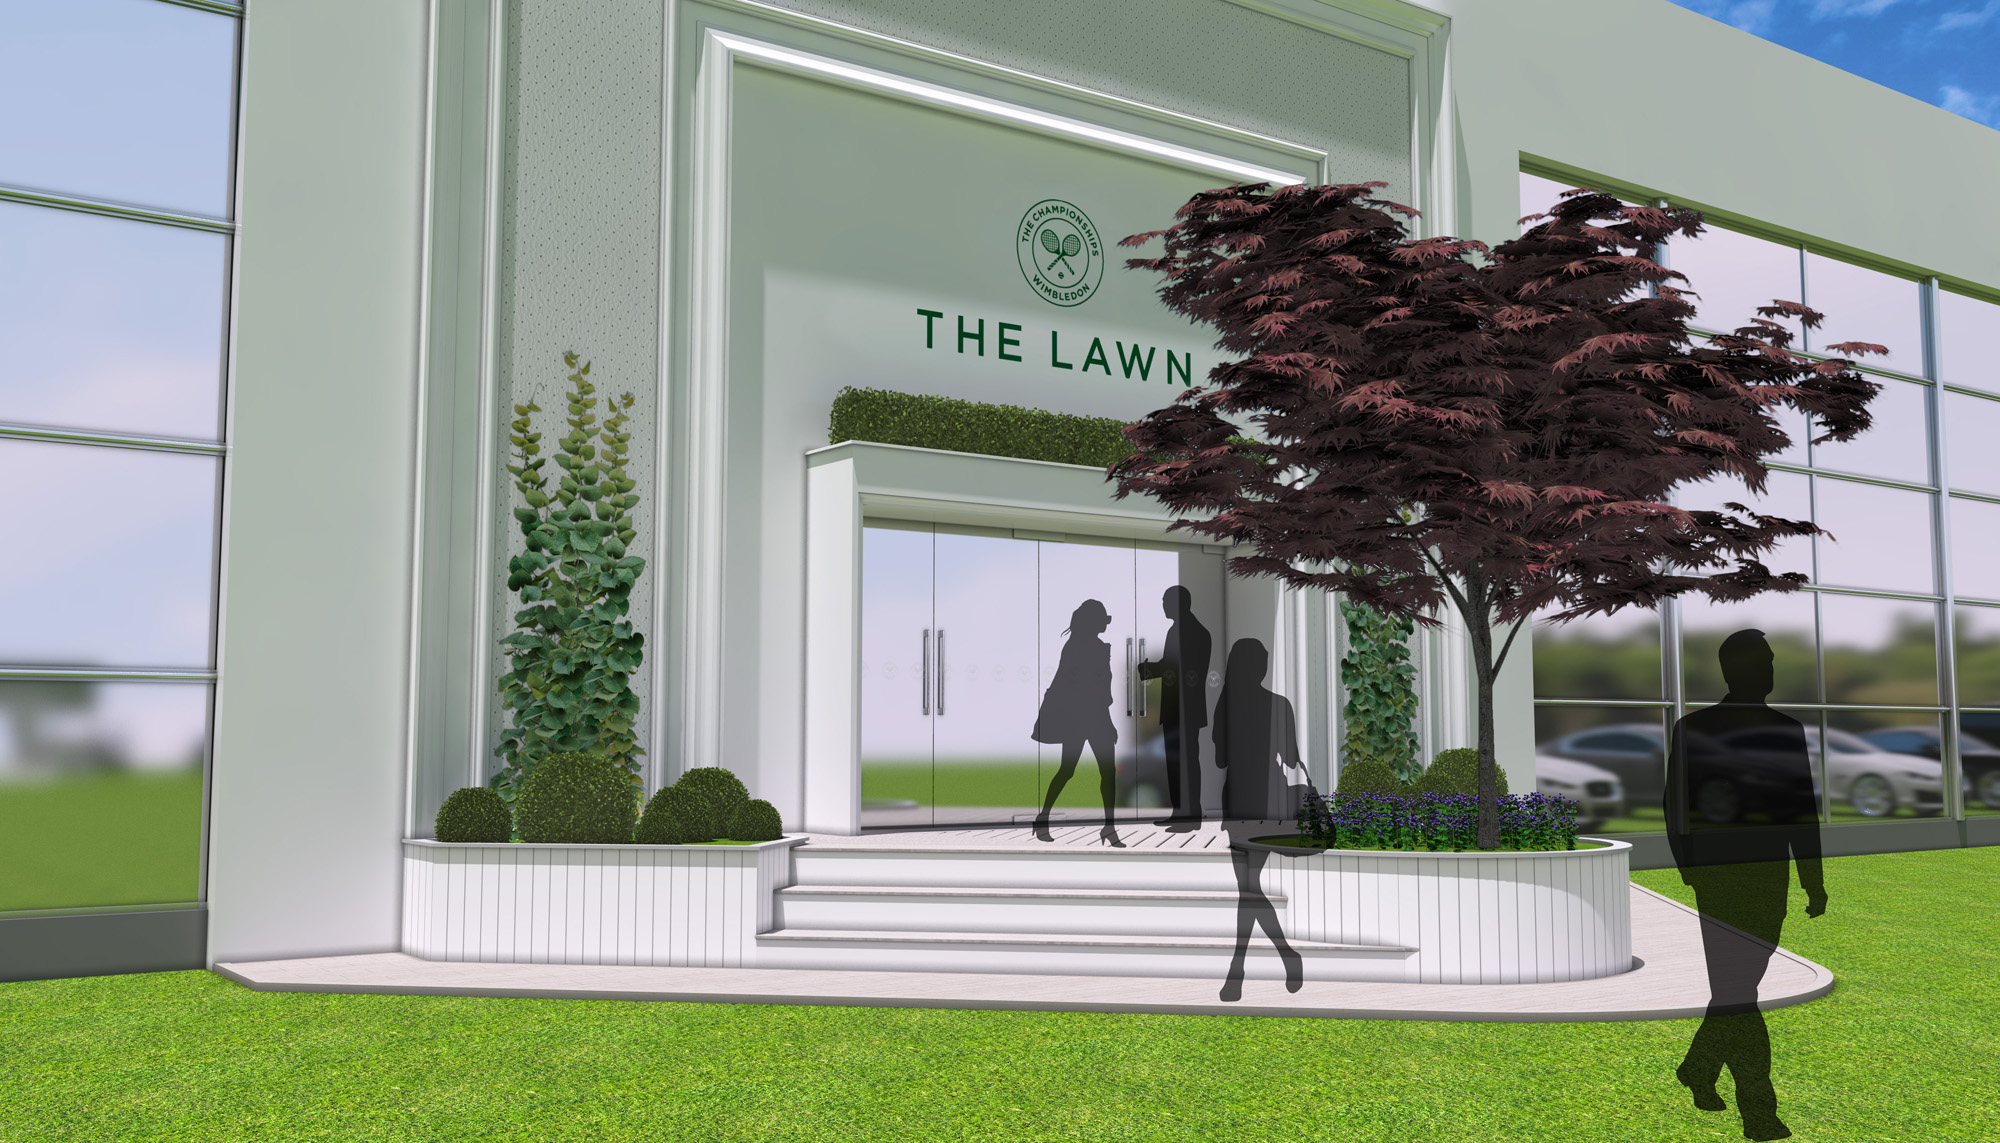 Keith Prowse hospitality Wimbledon the lawn entrance